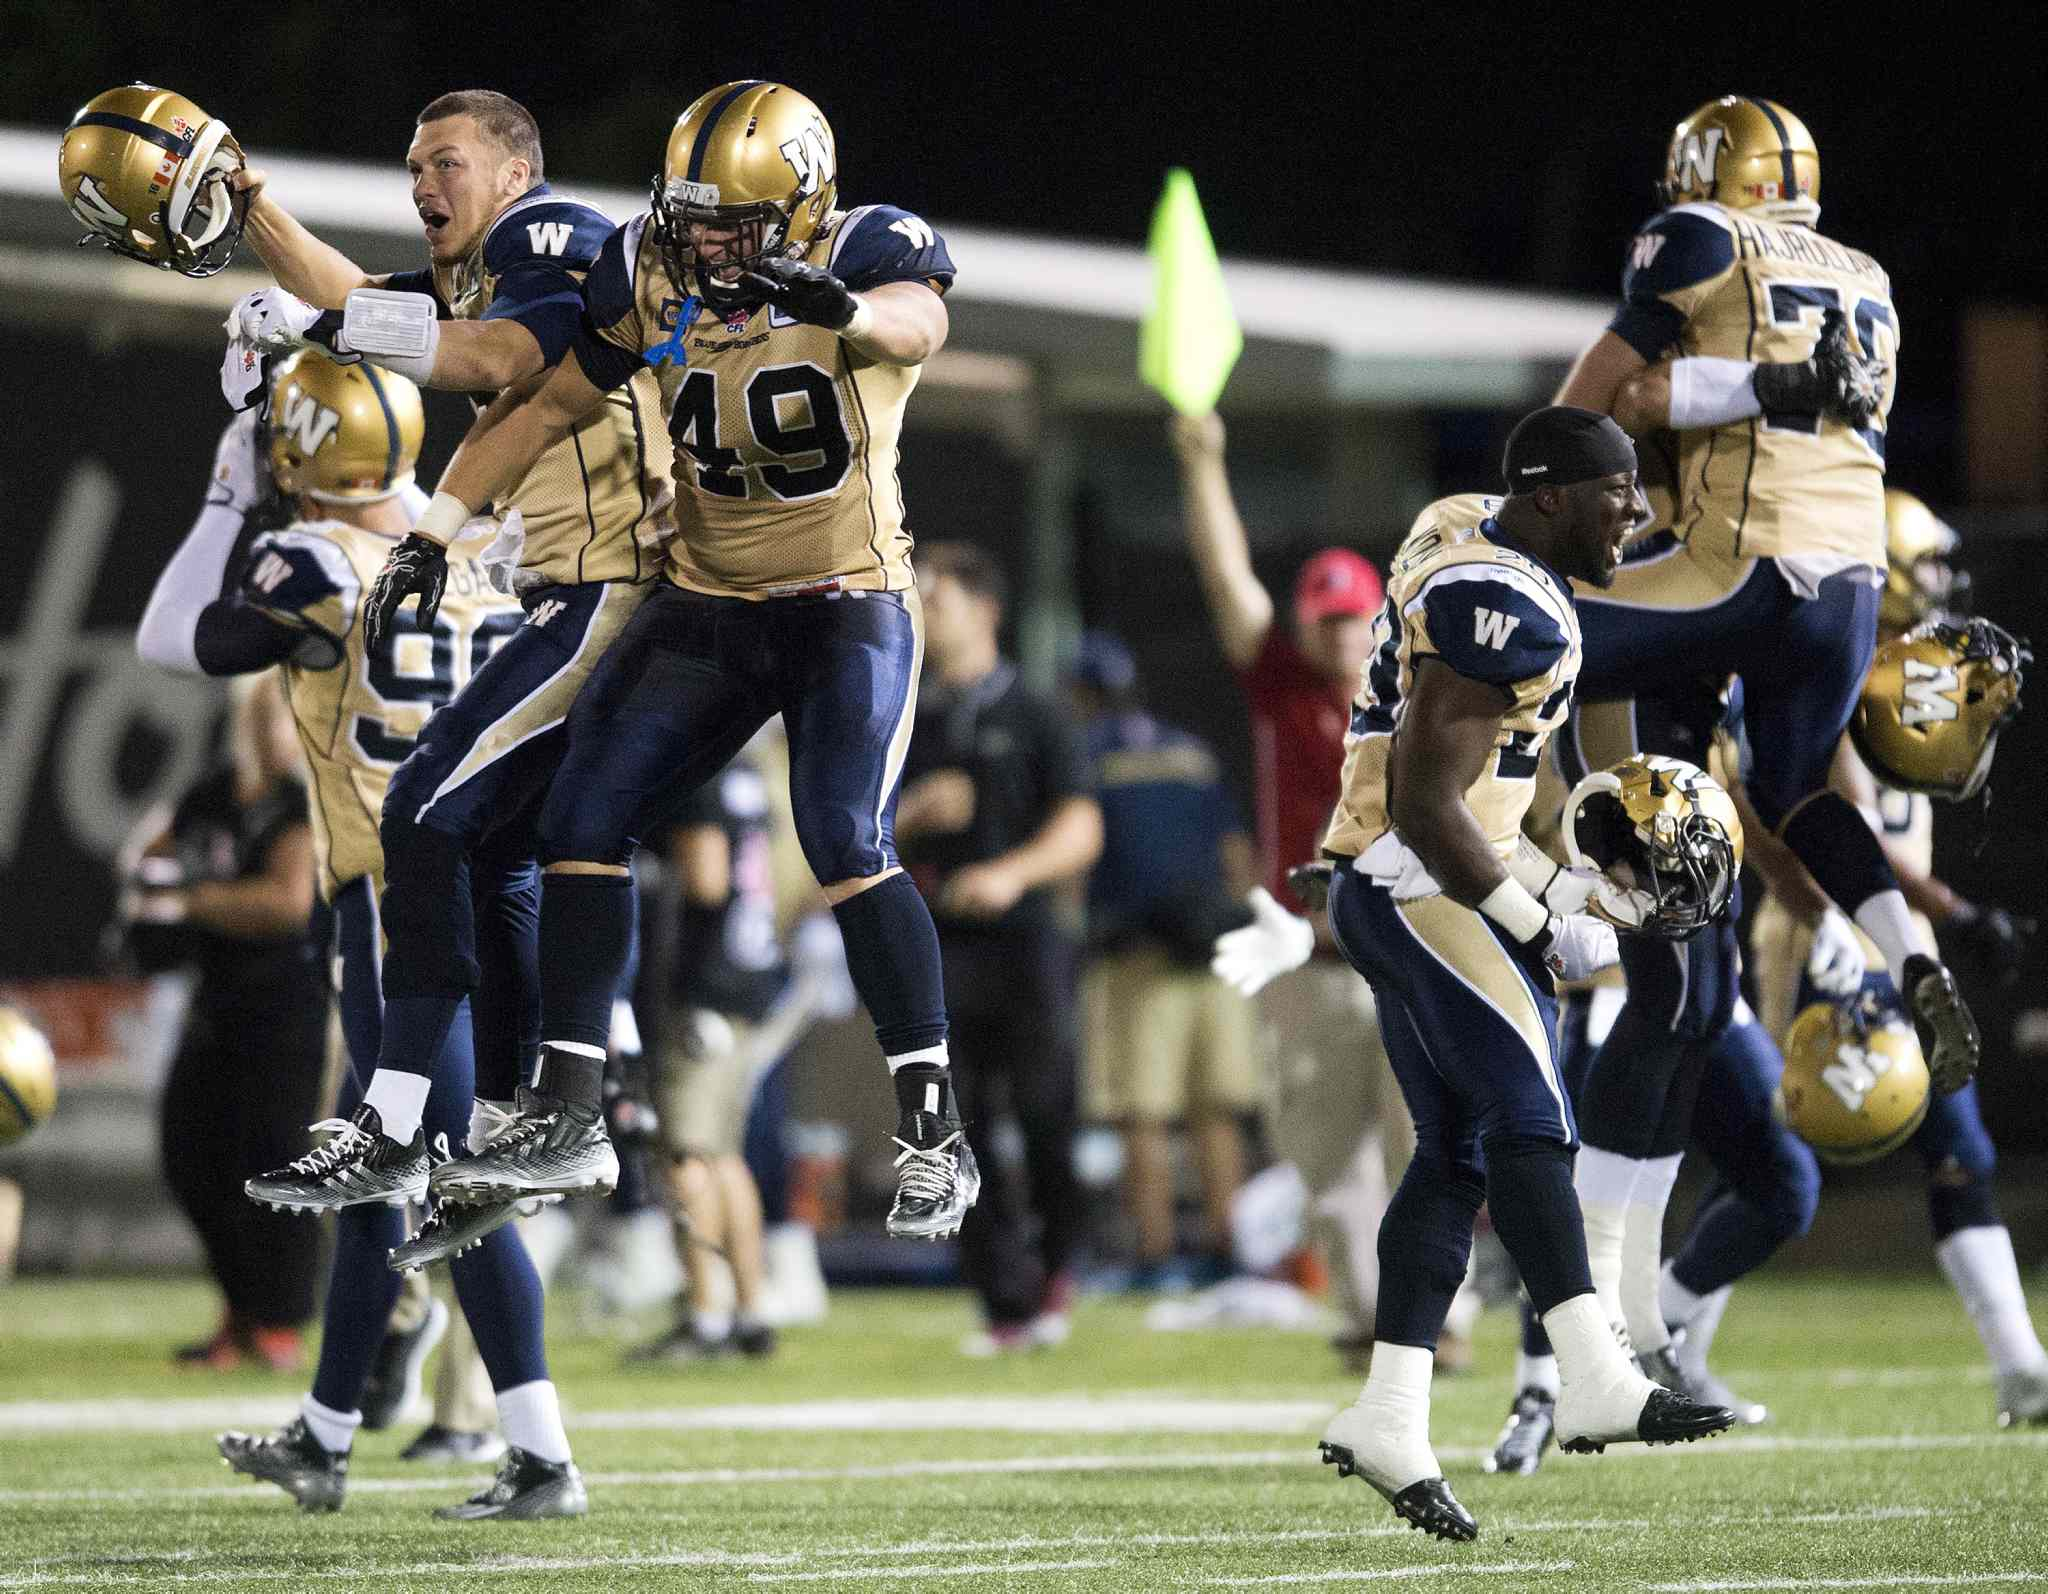 Winnipeg Blue Bombers' Robert Marve, left, and Mike Cornell, right, celebrate after defeating the Hamilton Tiger-Cats.